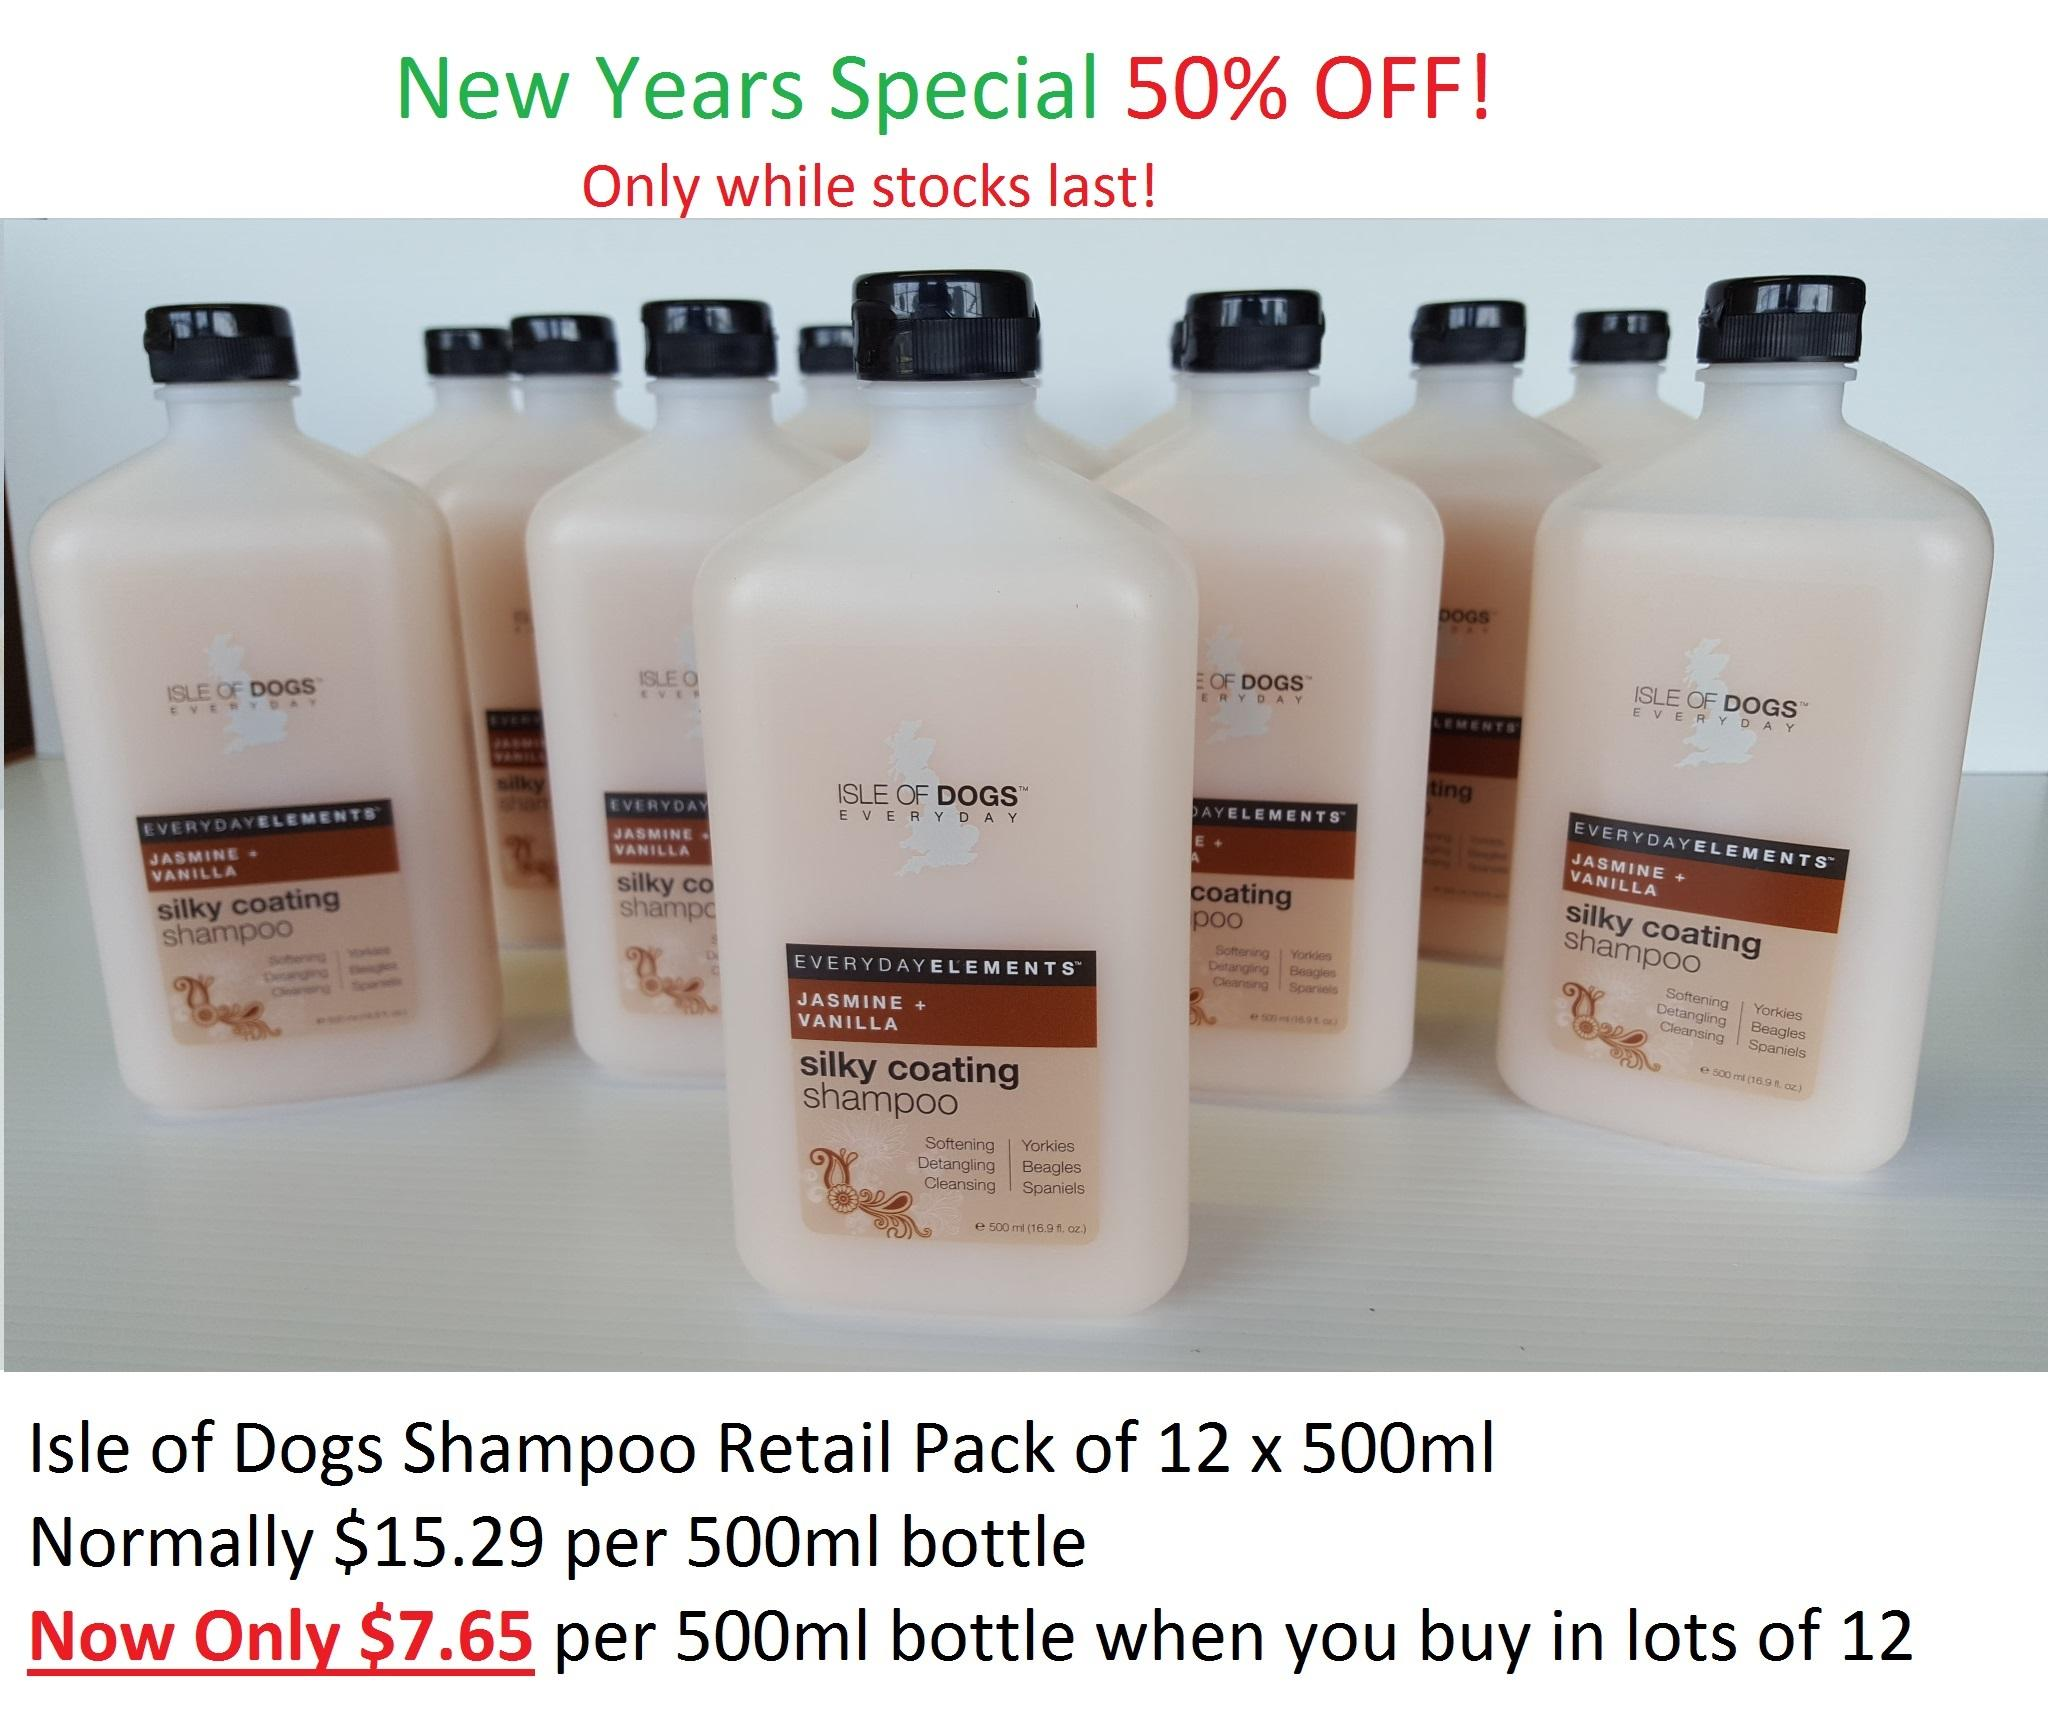 Isle Of Dogs Every Day Silky Coating Shampoo Jasmine & vanilla 500ml 12 pack